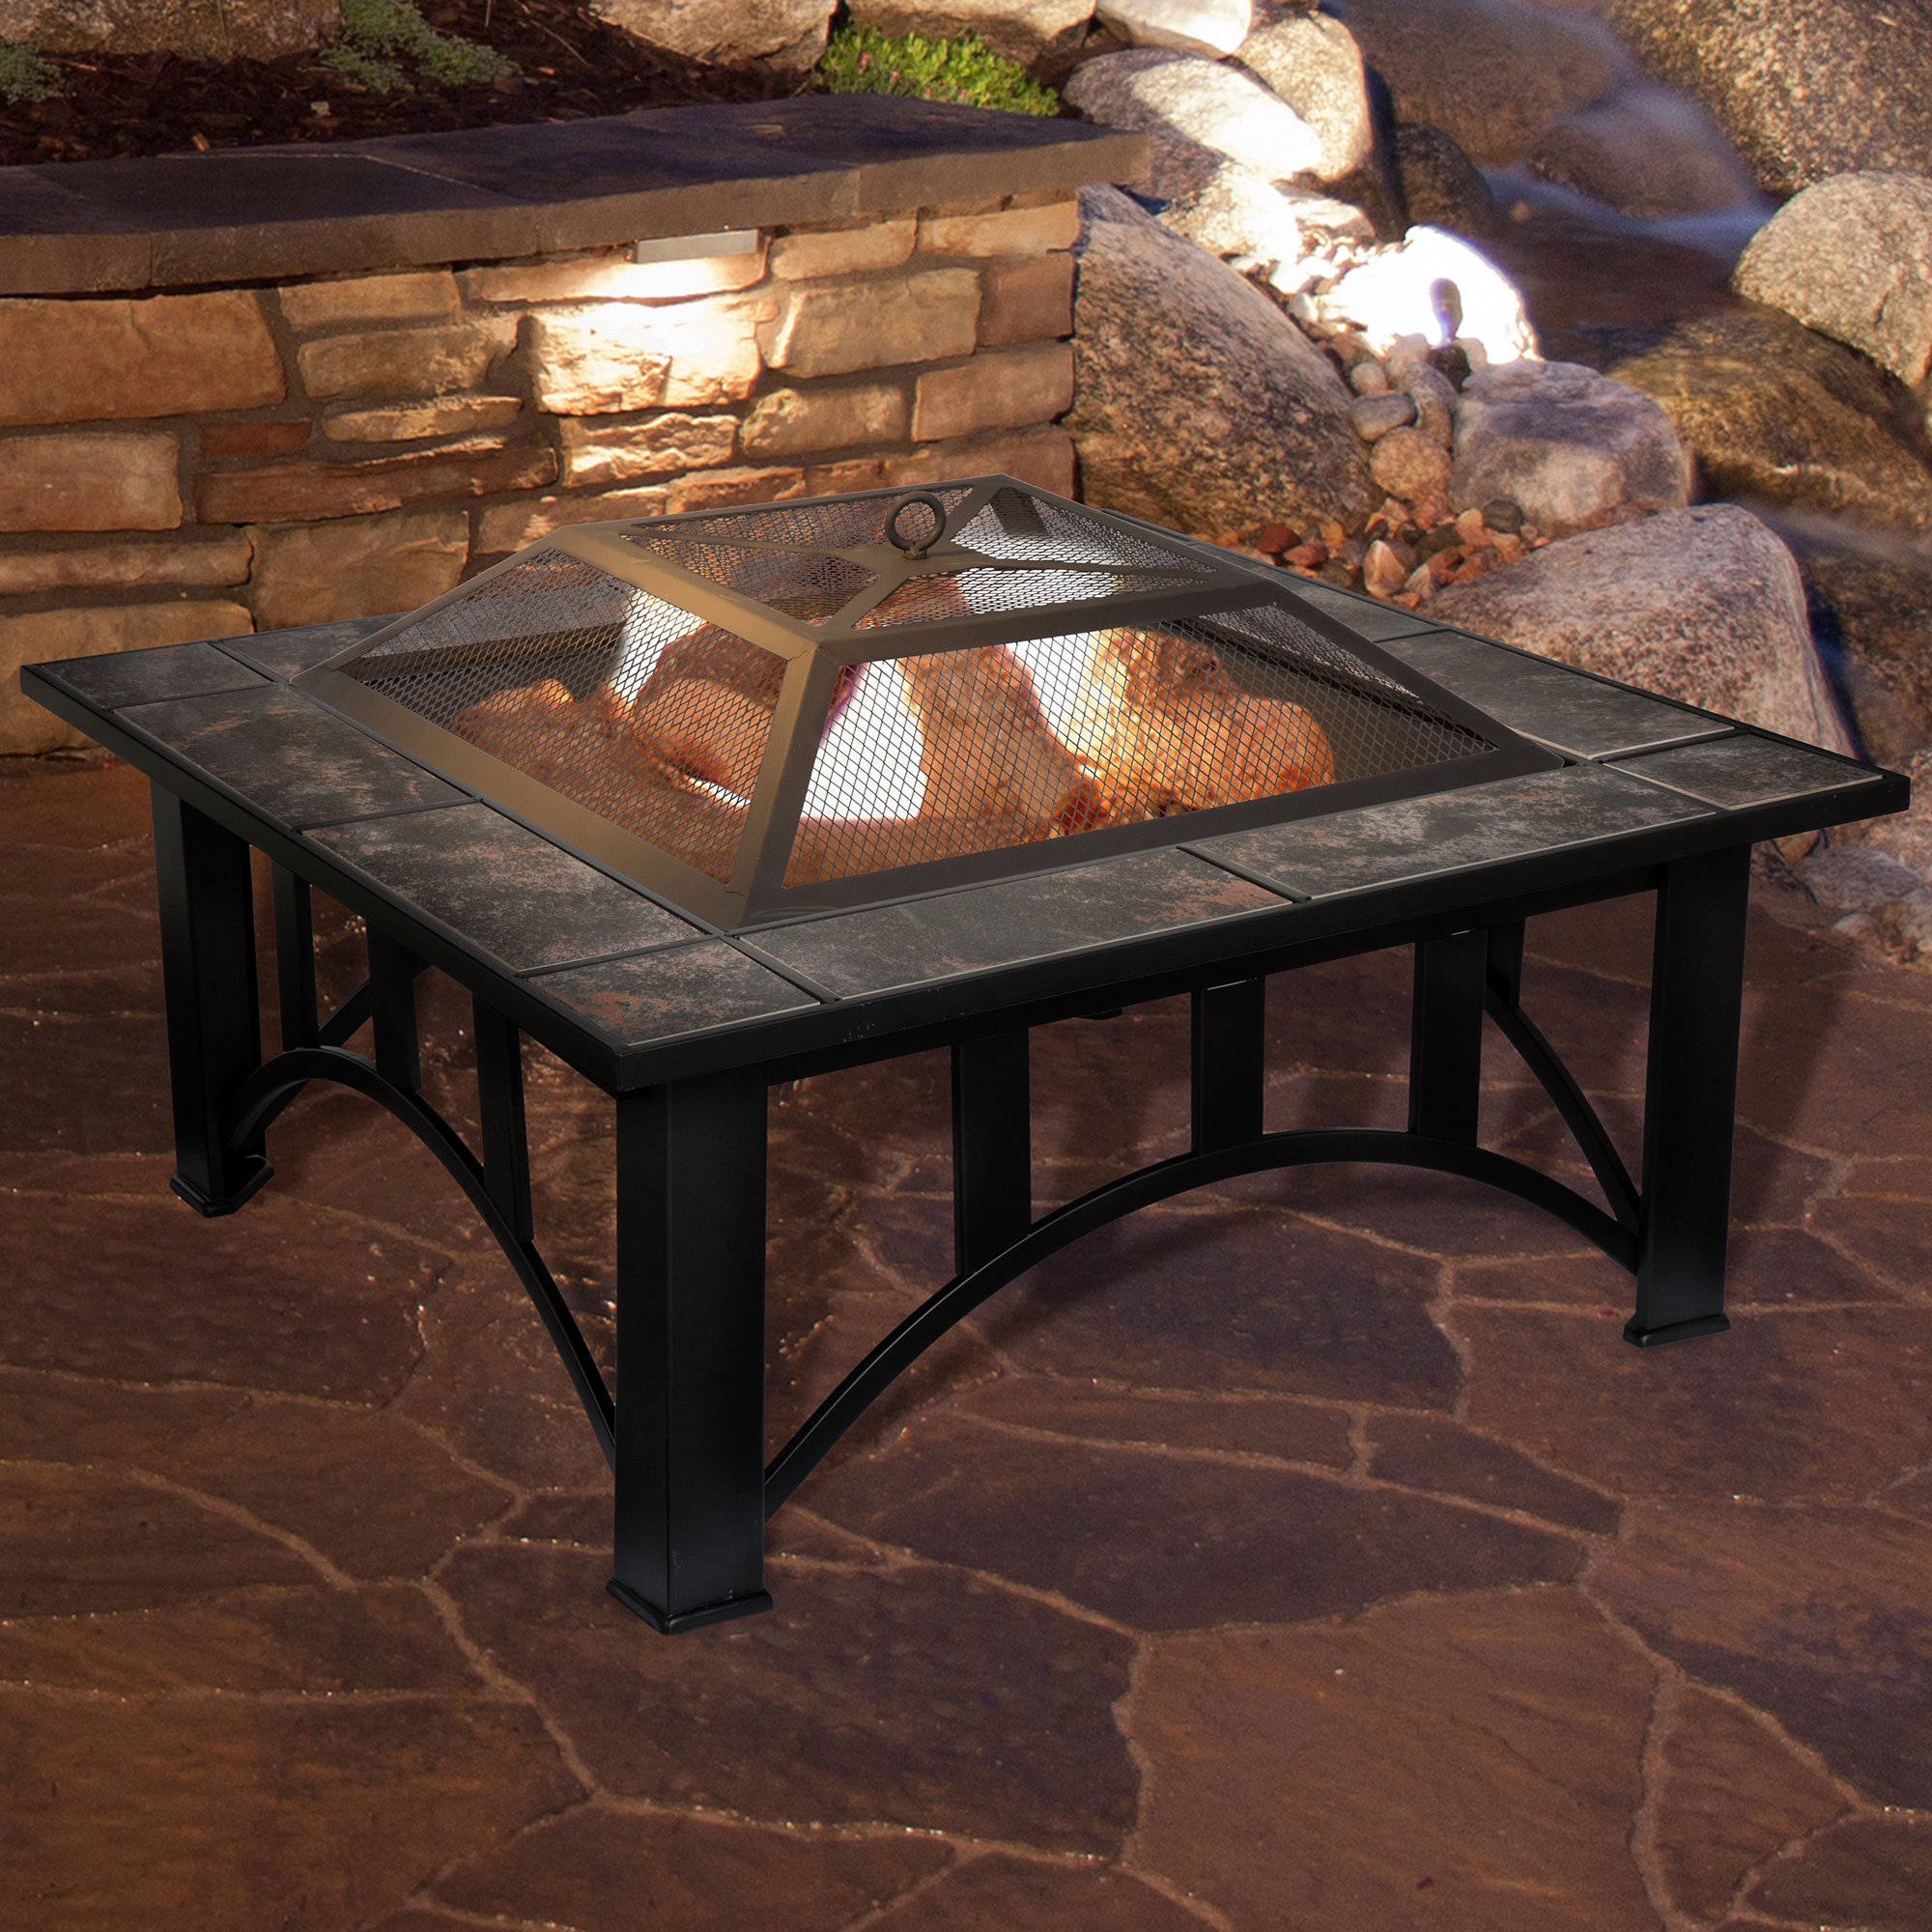 Fire Pit Set, Wood Burning Pit   Includes Screen, Cover And Log Poker    Great For Outdoor And Patio, 33 Inch Square Marble Tile Firepit By Pure  Garden ...